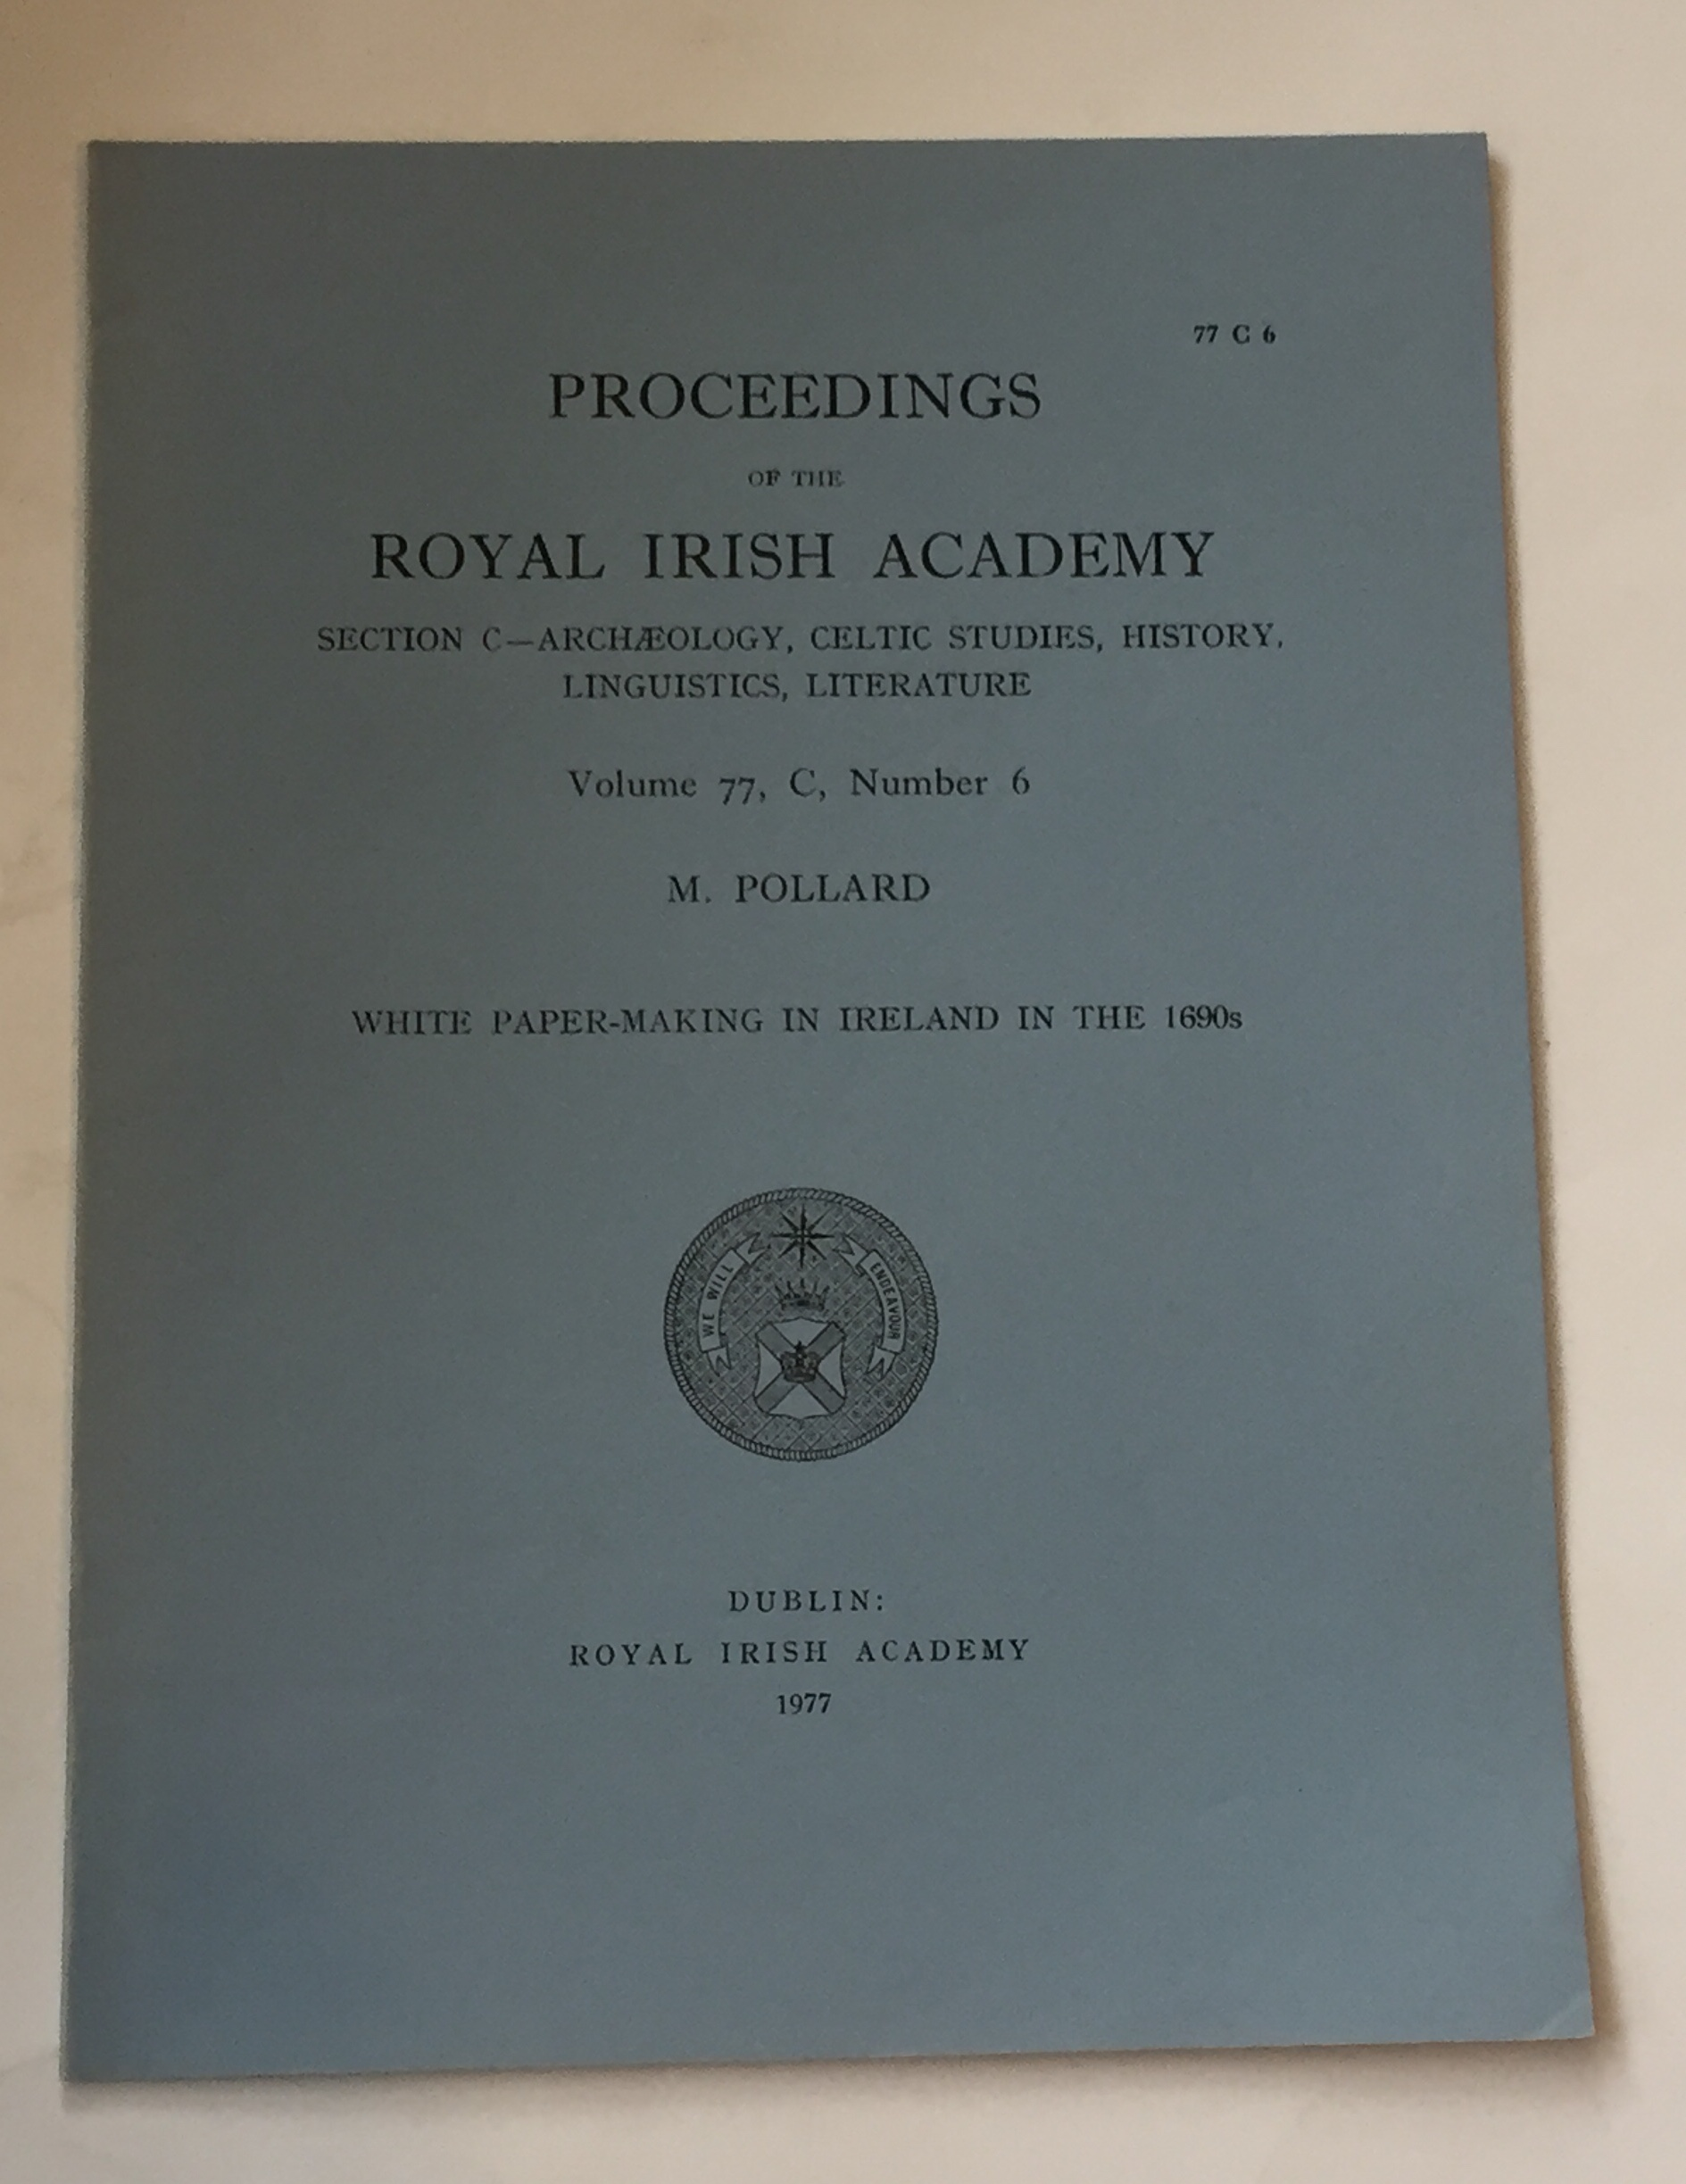 Image for White paper-making in Ireland in the 1690s  :Proceedings of the Royal Irish Academy, Volume 77, Section C, No. 6